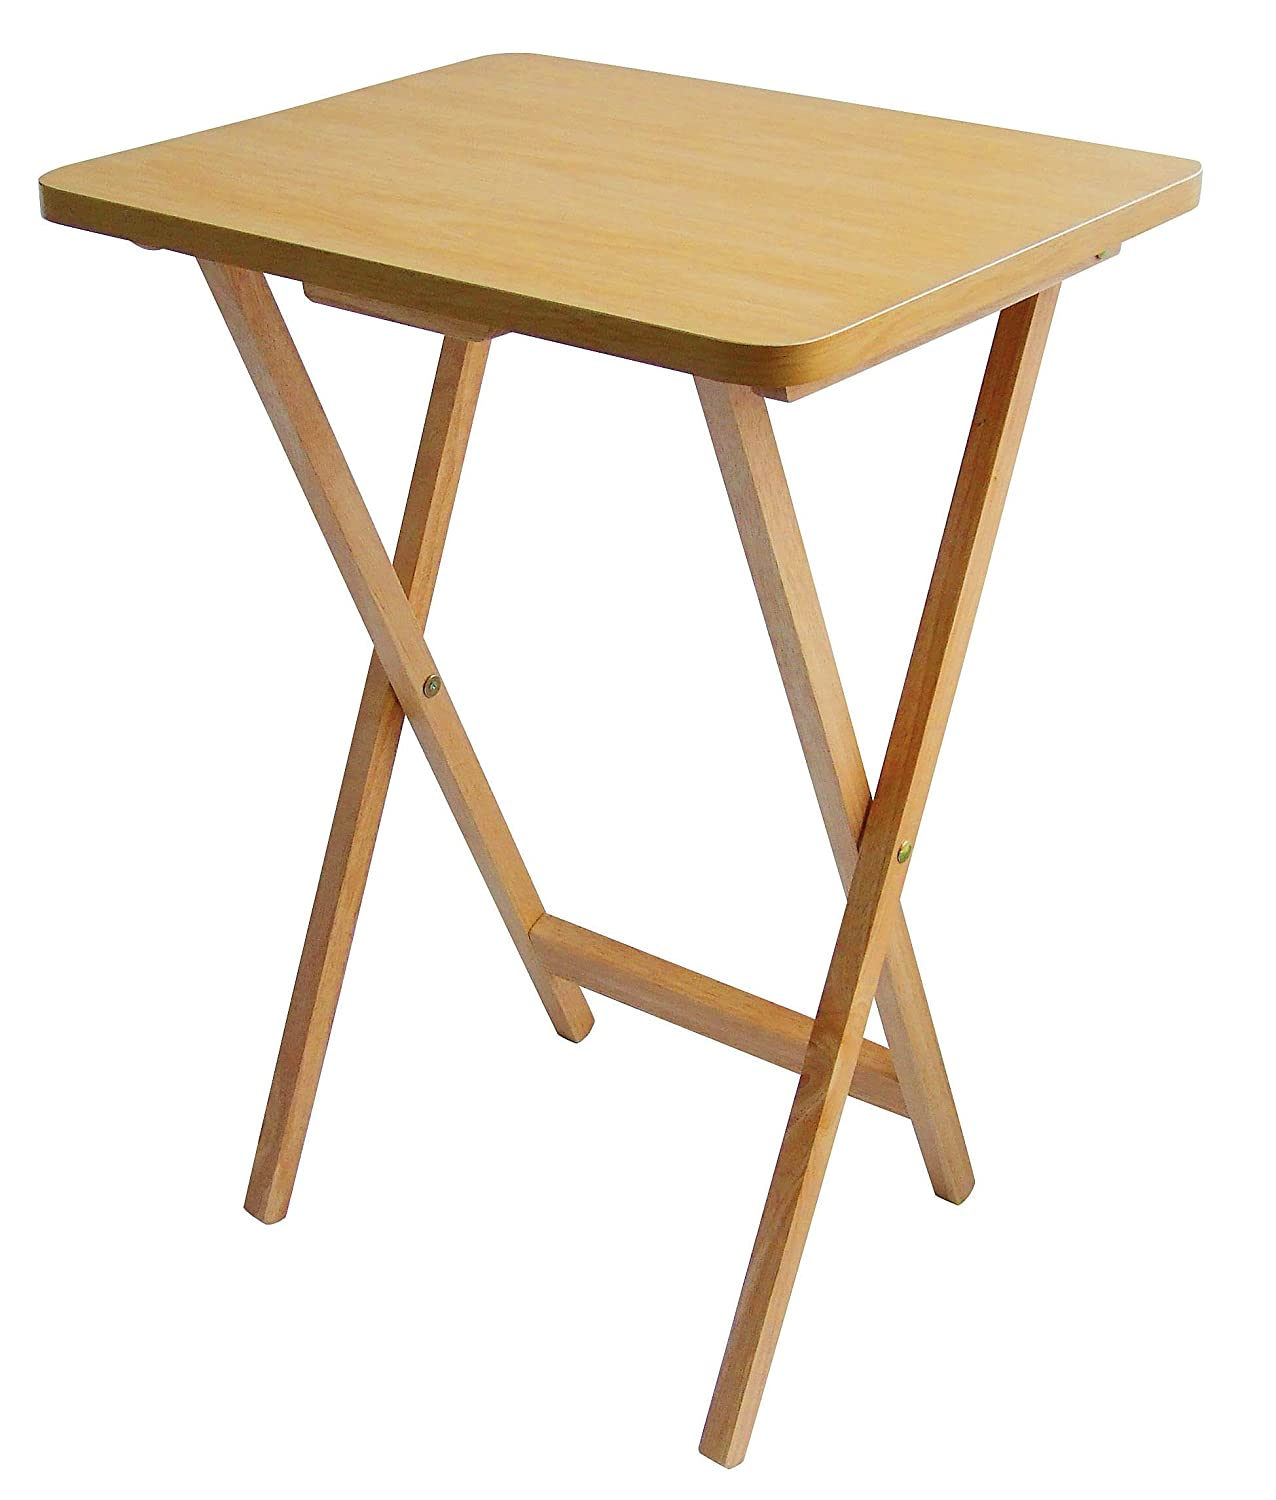 Premier Housewares Folding Snack Table   Natural Wood: Amazon.co.uk:  Kitchen U0026 Home